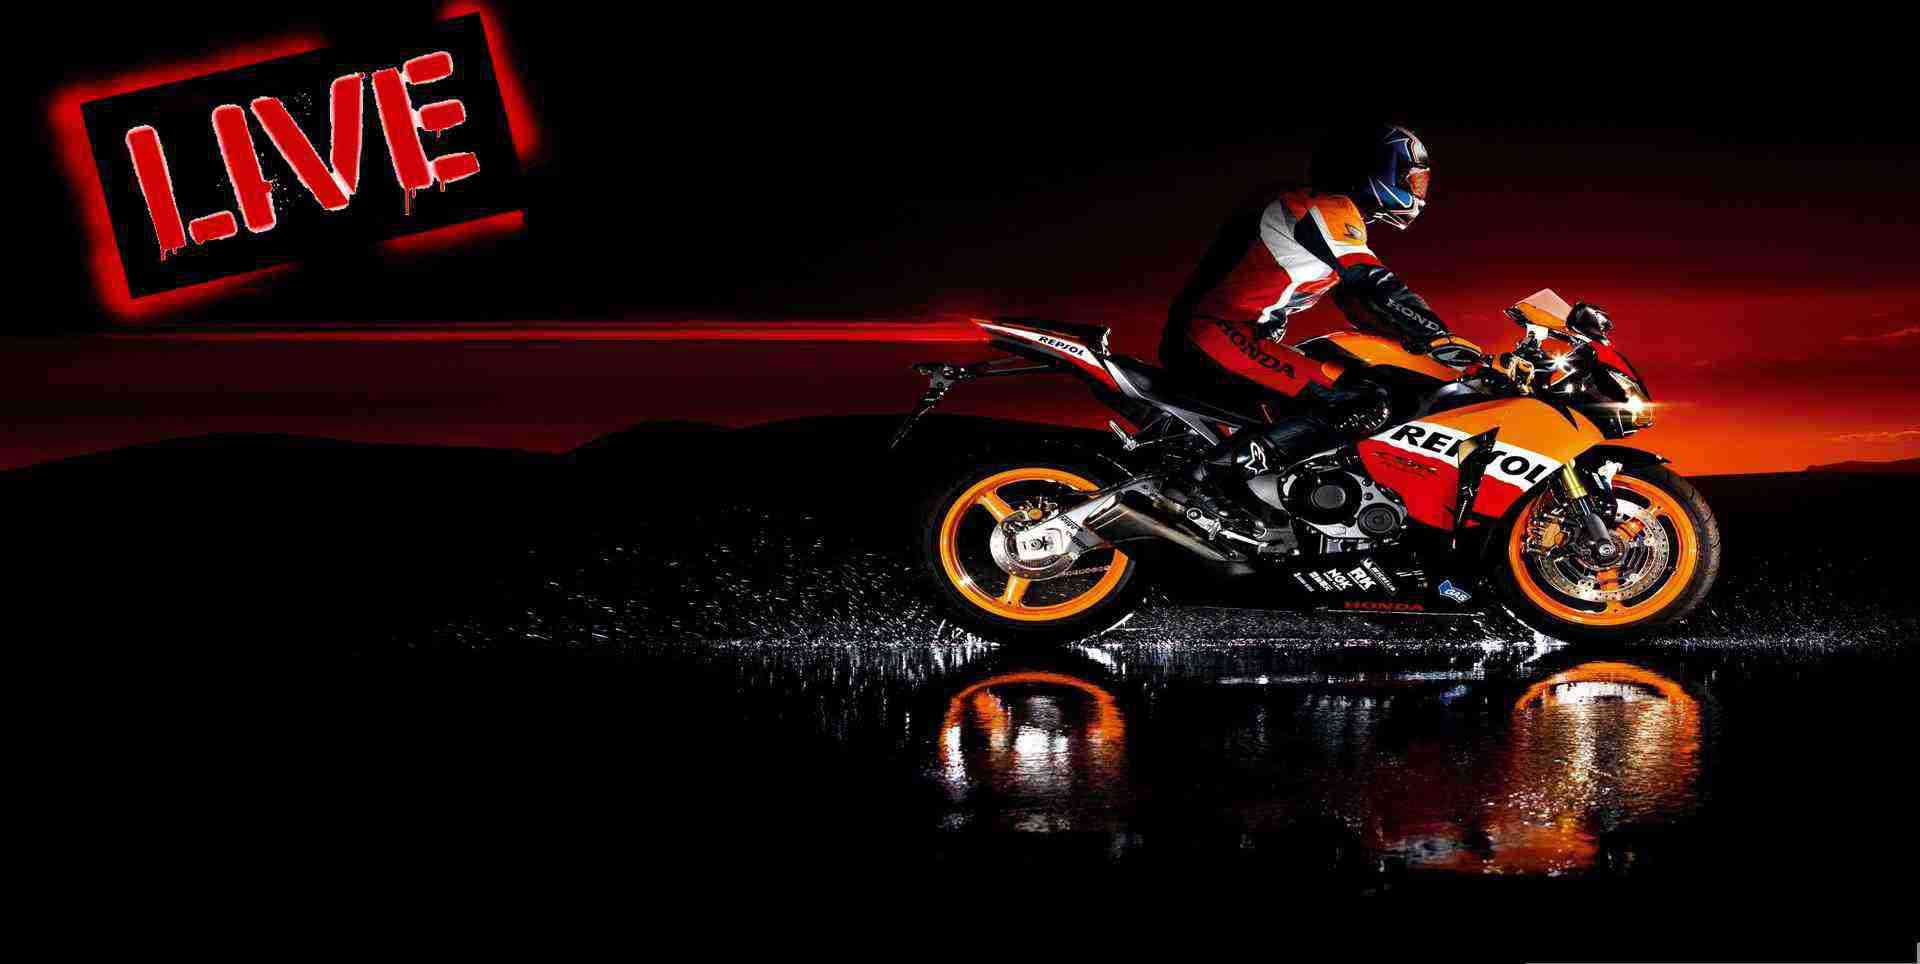 live-2014-malaysian-motorcycle-grand-prix-online